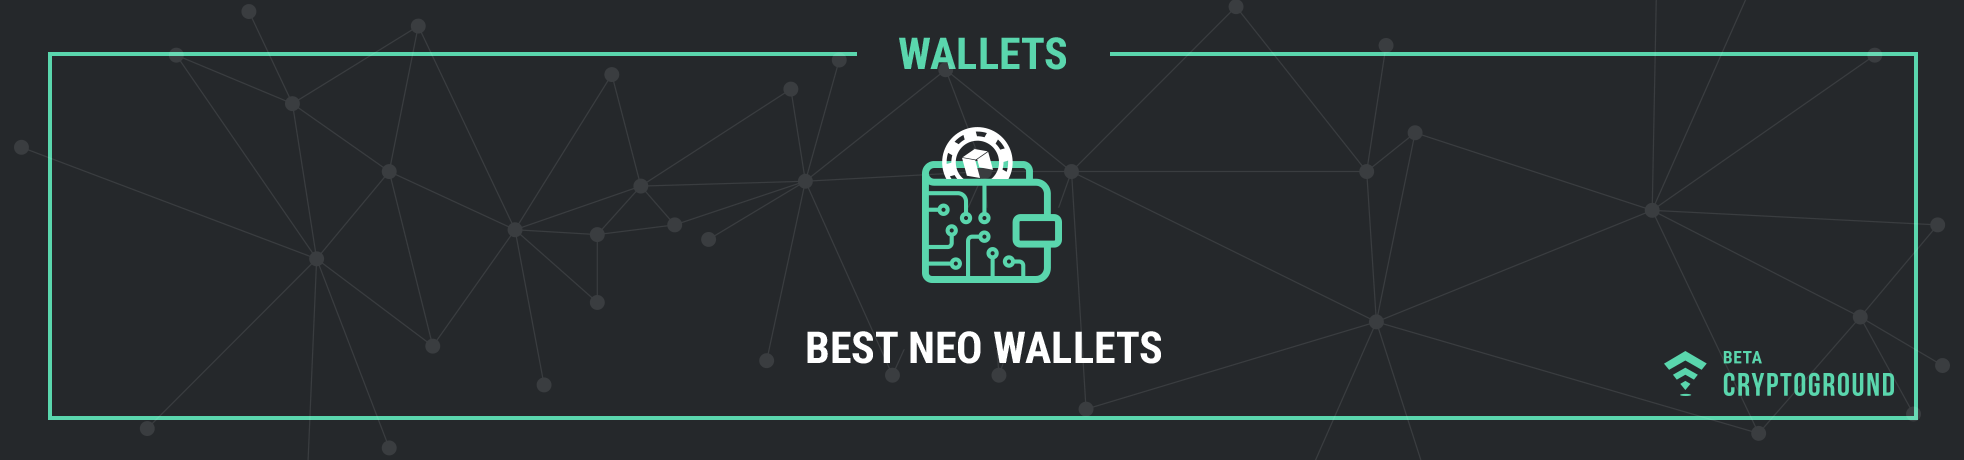 Best Neo Wallets